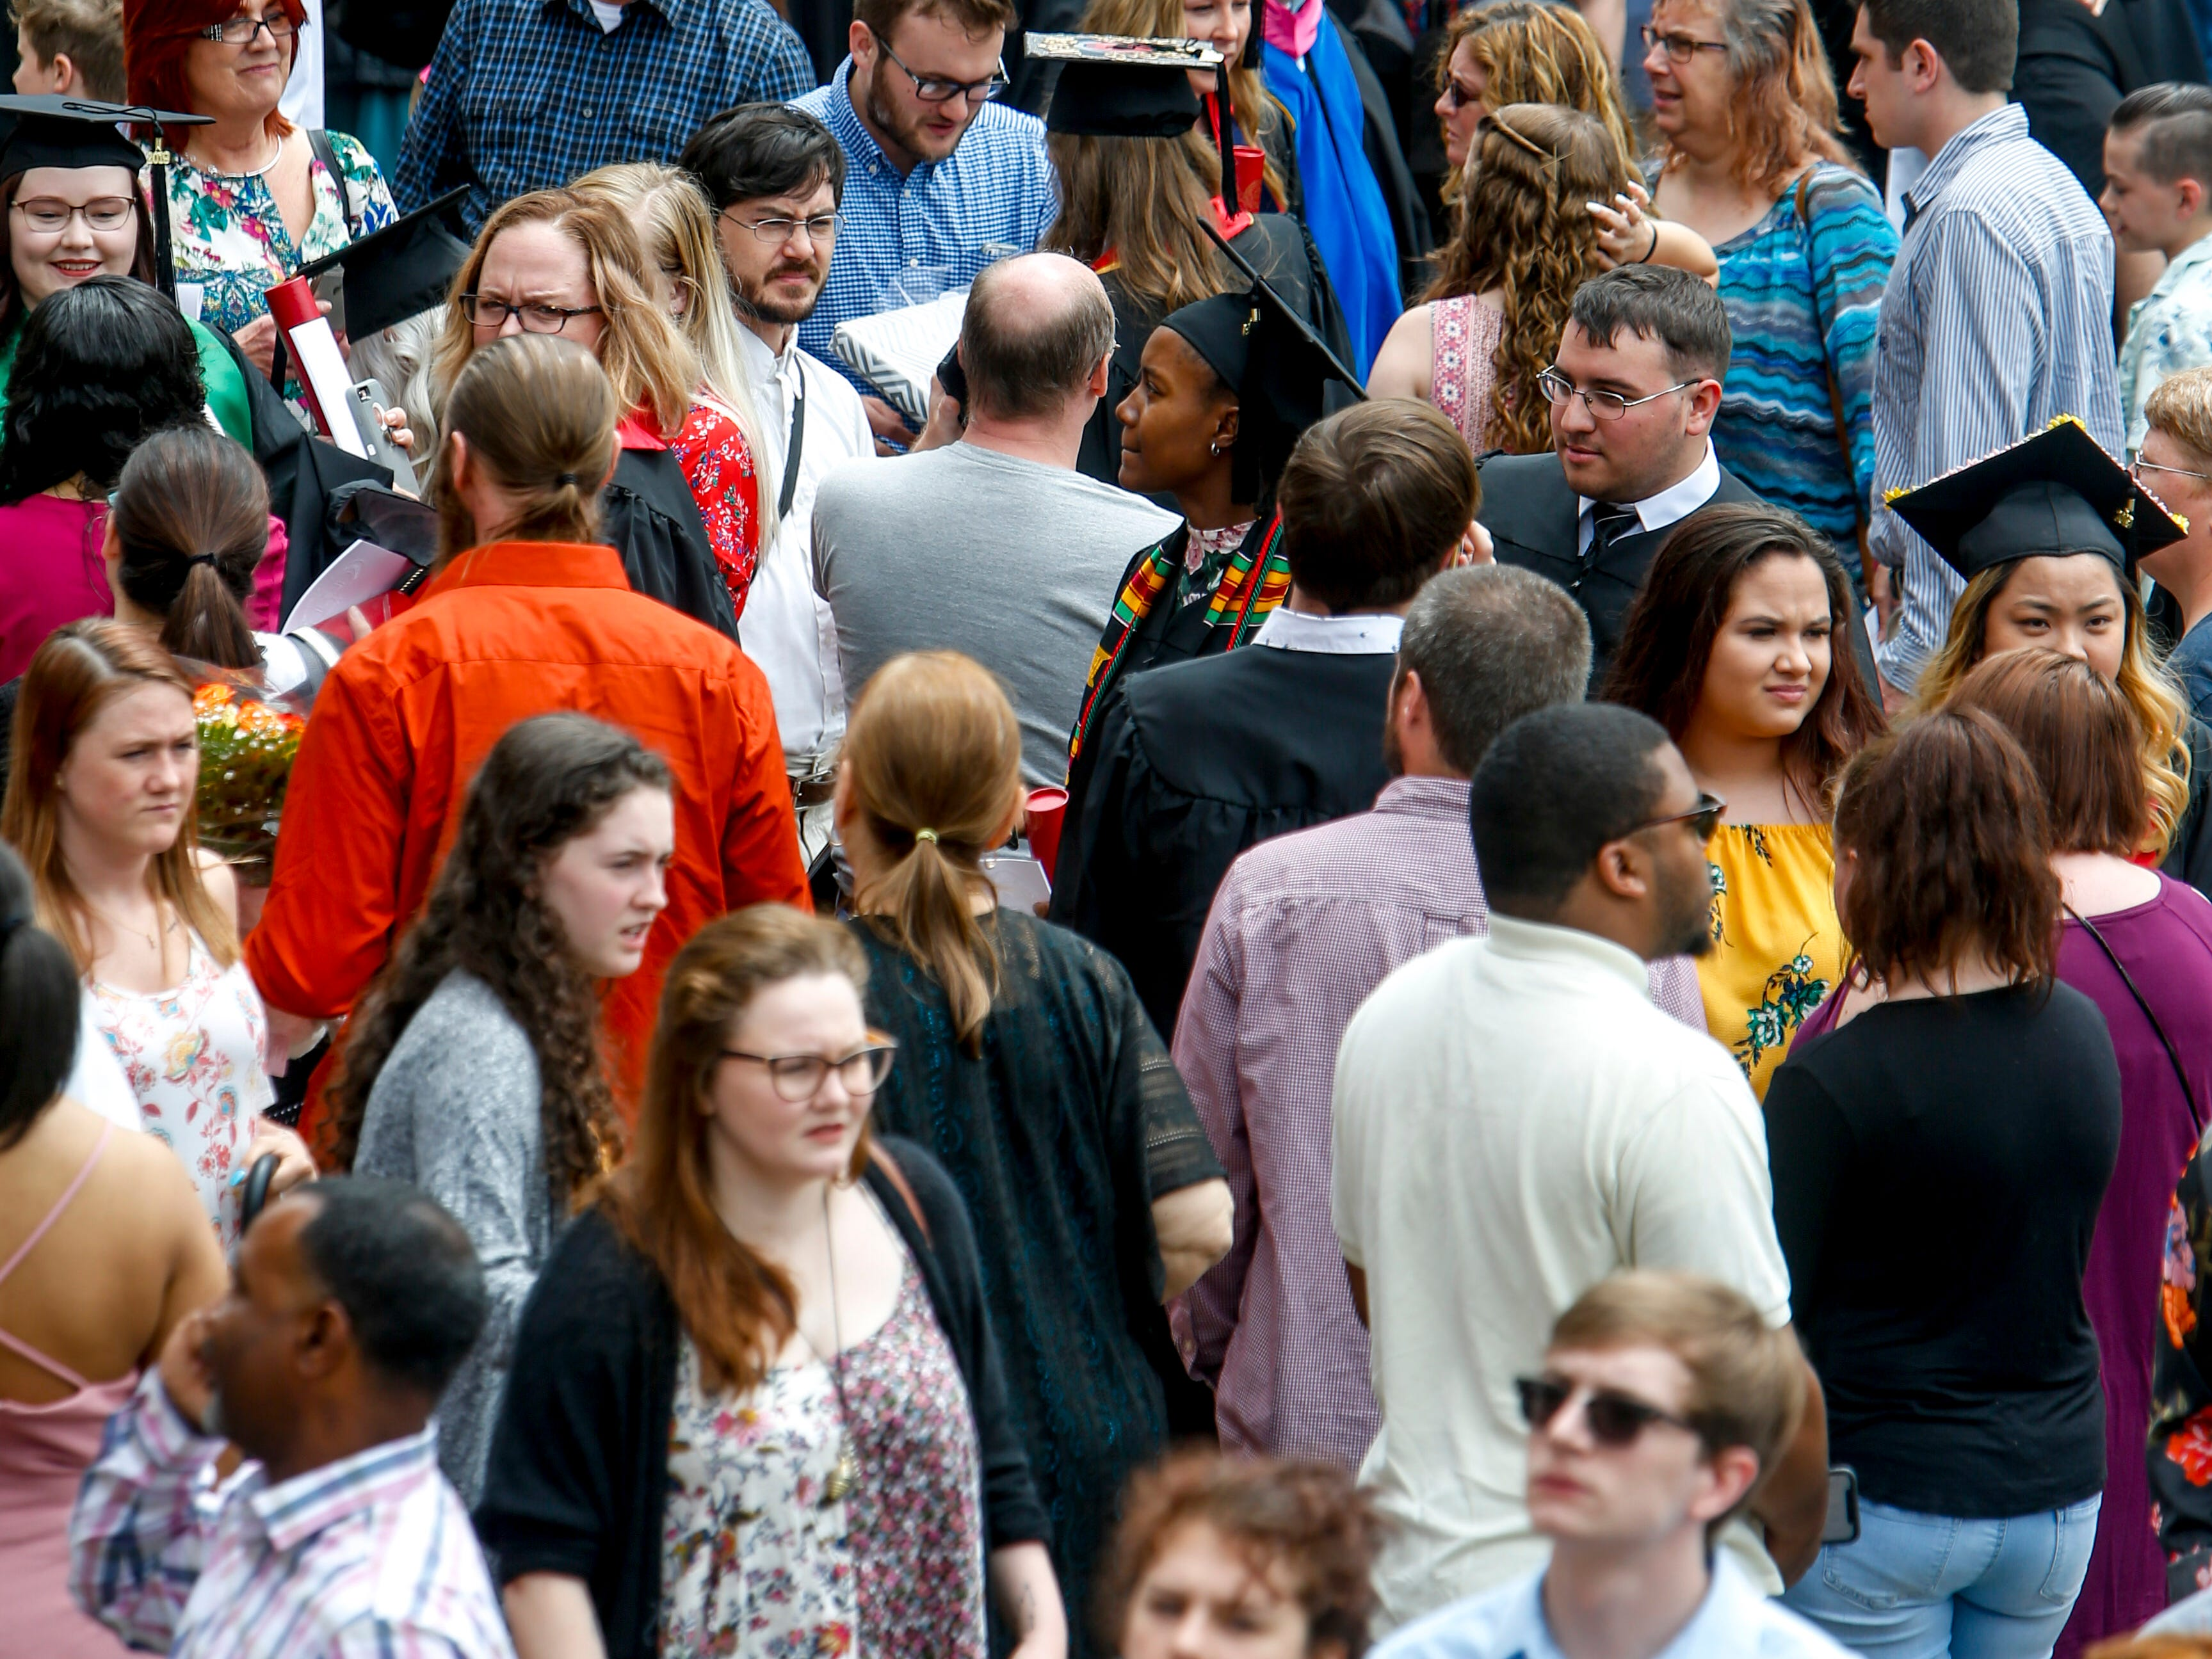 Family and friends mingle with graduates on the outside lawn at the Austin Peay spring commencement ceremony 2019 for College of Business and College of STEM at Winfield Dunn Center in Clarksville, Tenn., on Friday, May 3, 2019.